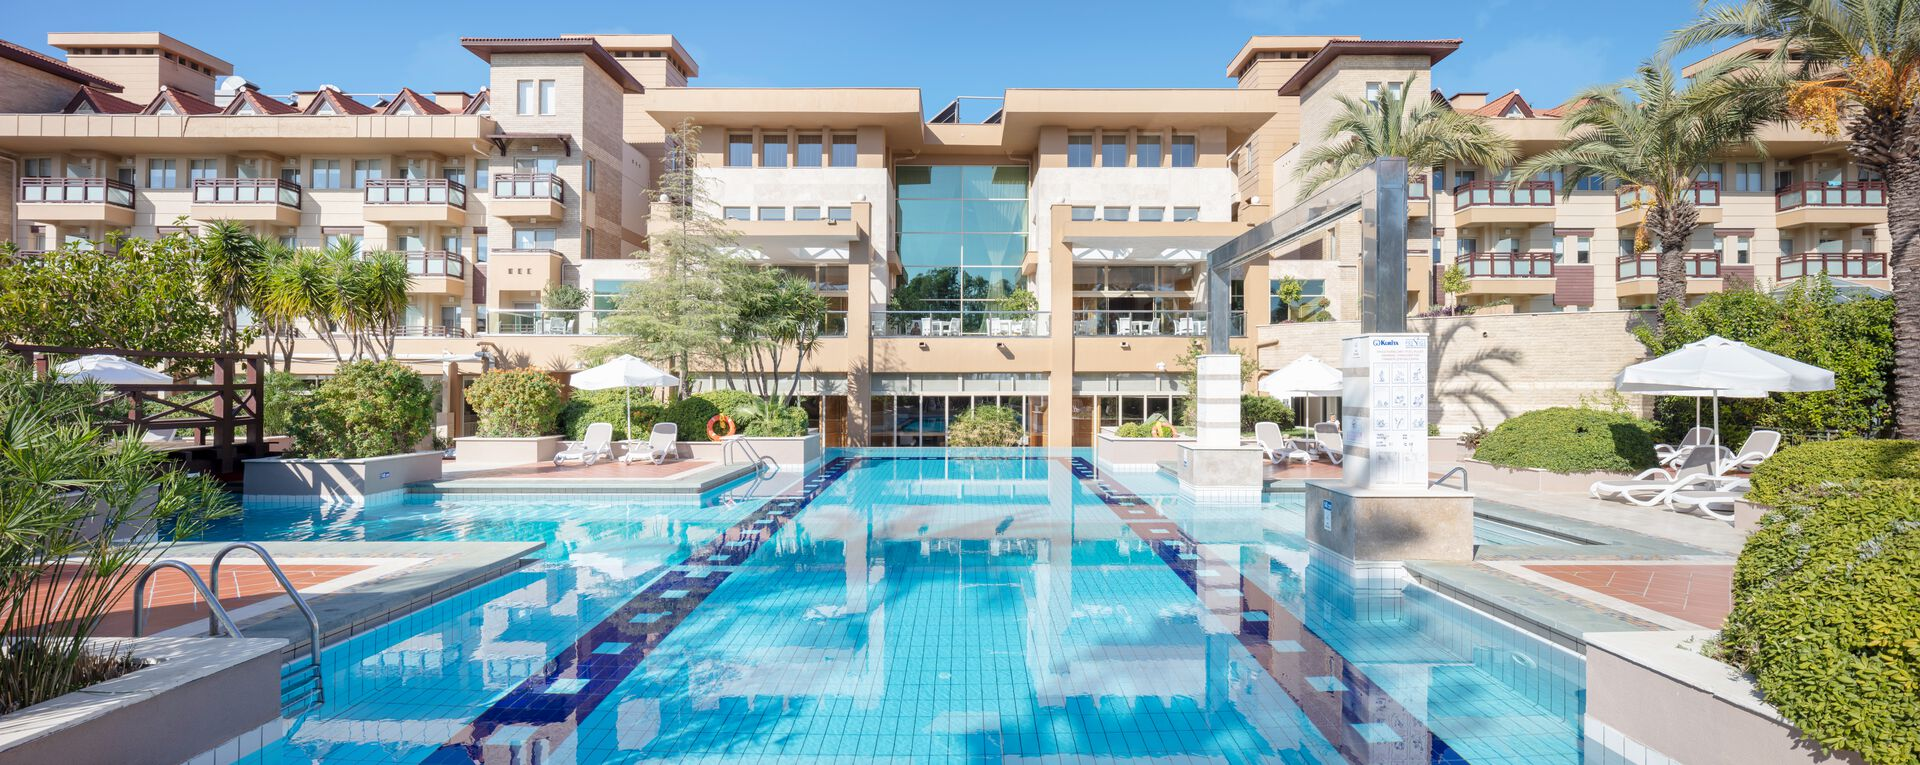 The Xanthe Resort and Spa - 5*